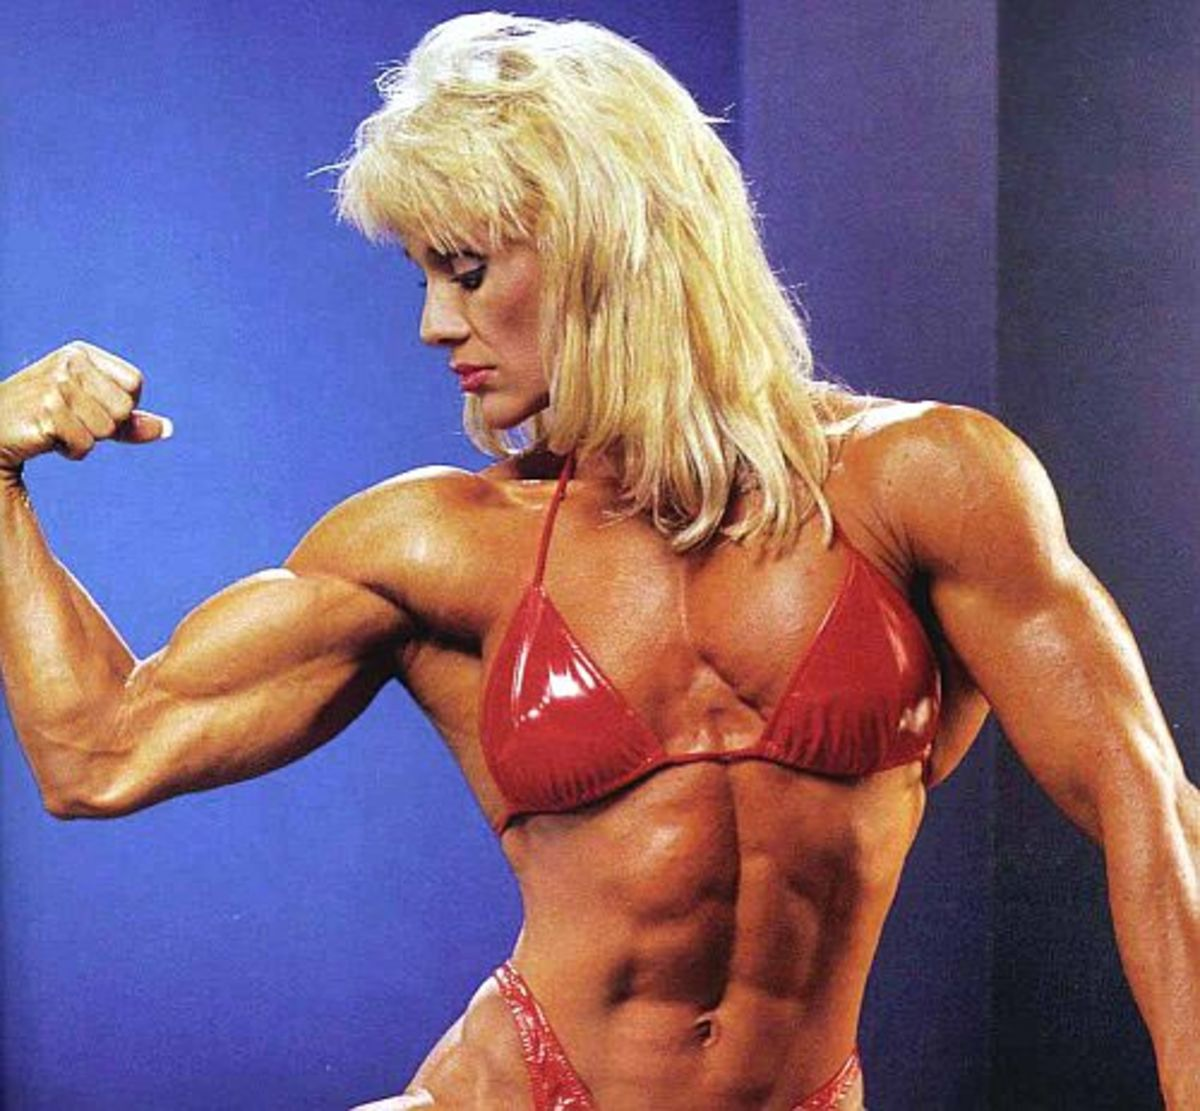 Legendary female bodybuilder Cory Everson